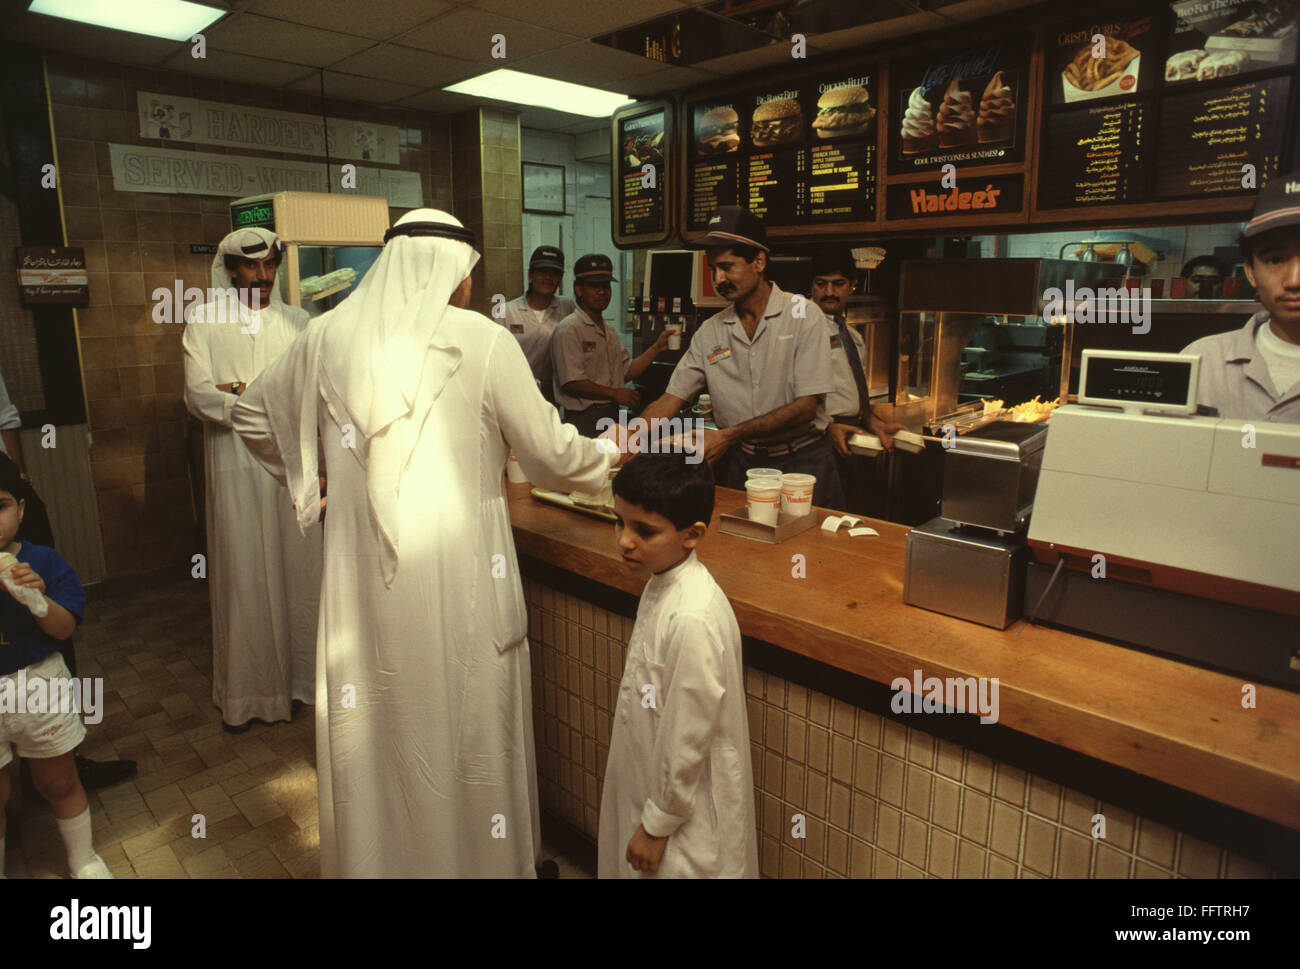 hardee s restaurant in al khobar stock photo 95817043 alamy